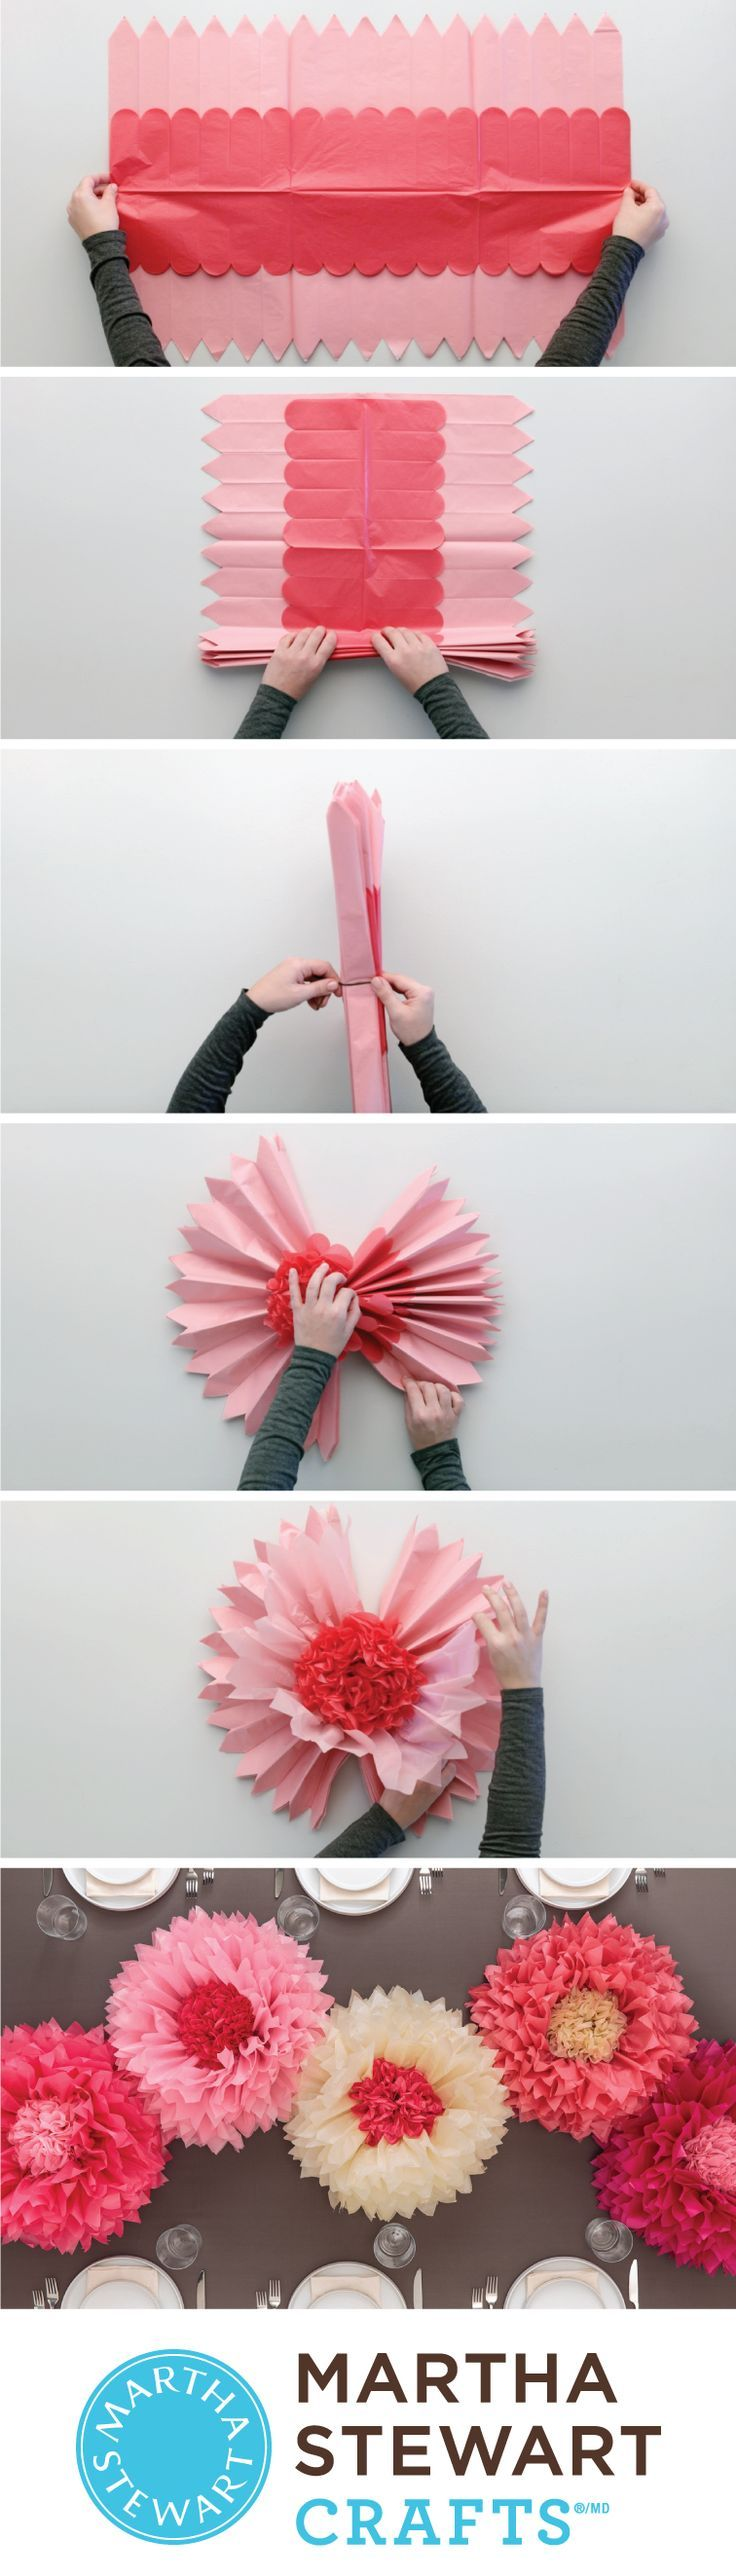 Create Floral Party Decor In Minutes With The Pom Pom Kit From